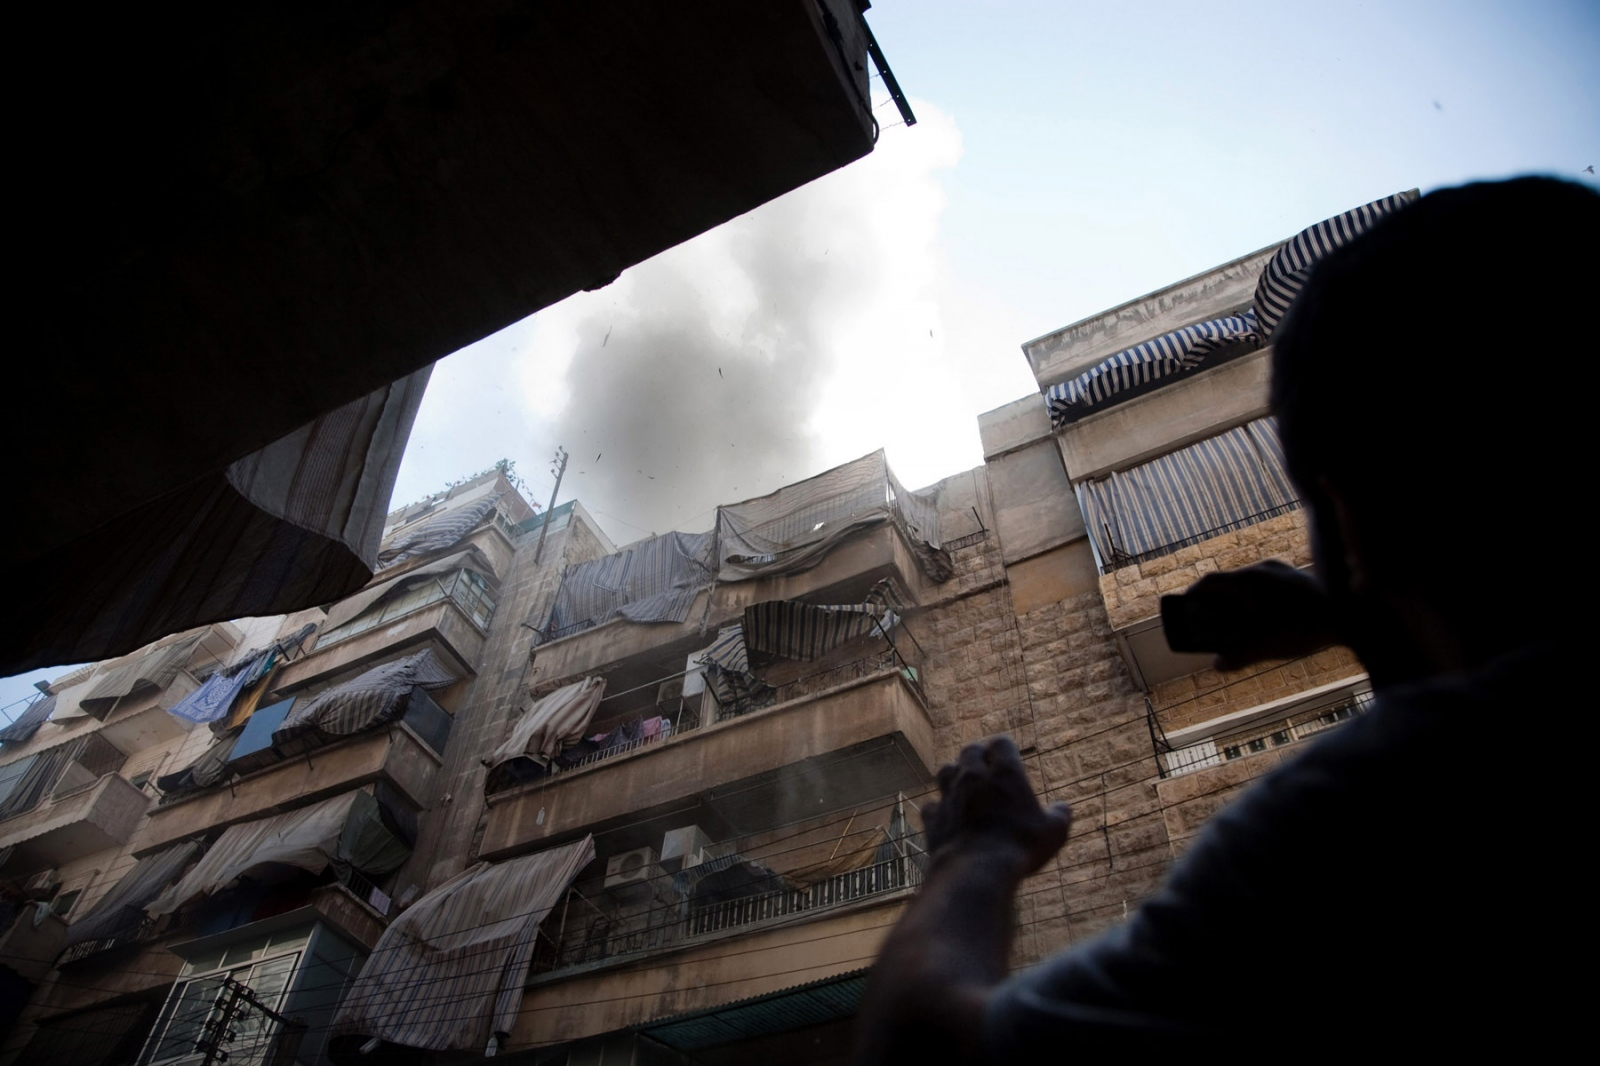 A civilian films debris and smoke coming from an apartment building that was hit by an airstrike in the neighborhood of Bustan al Qasr in Aleppo, Syria, on Monday, August 6, 2012 which claimed at least eight lives including five children from the same family. At least two people, including a child, were trapped under rubble, complicating rescue attempts. Bustan al Qasr, a Free Syrian Army controlled district in south west Aleppo, has consistently been shelled and attacked by helicopters and planes over the last two weeks after the FSA entered Syria's commercial capital and its most populated city. According to the UN, over 200,000 civilians have fled the city, whilst many other displaced remain inside, seeking refuge in mosques, parks, and schools. Bustan al Qasr remains almost fully populated by its residents who chose not to flee.